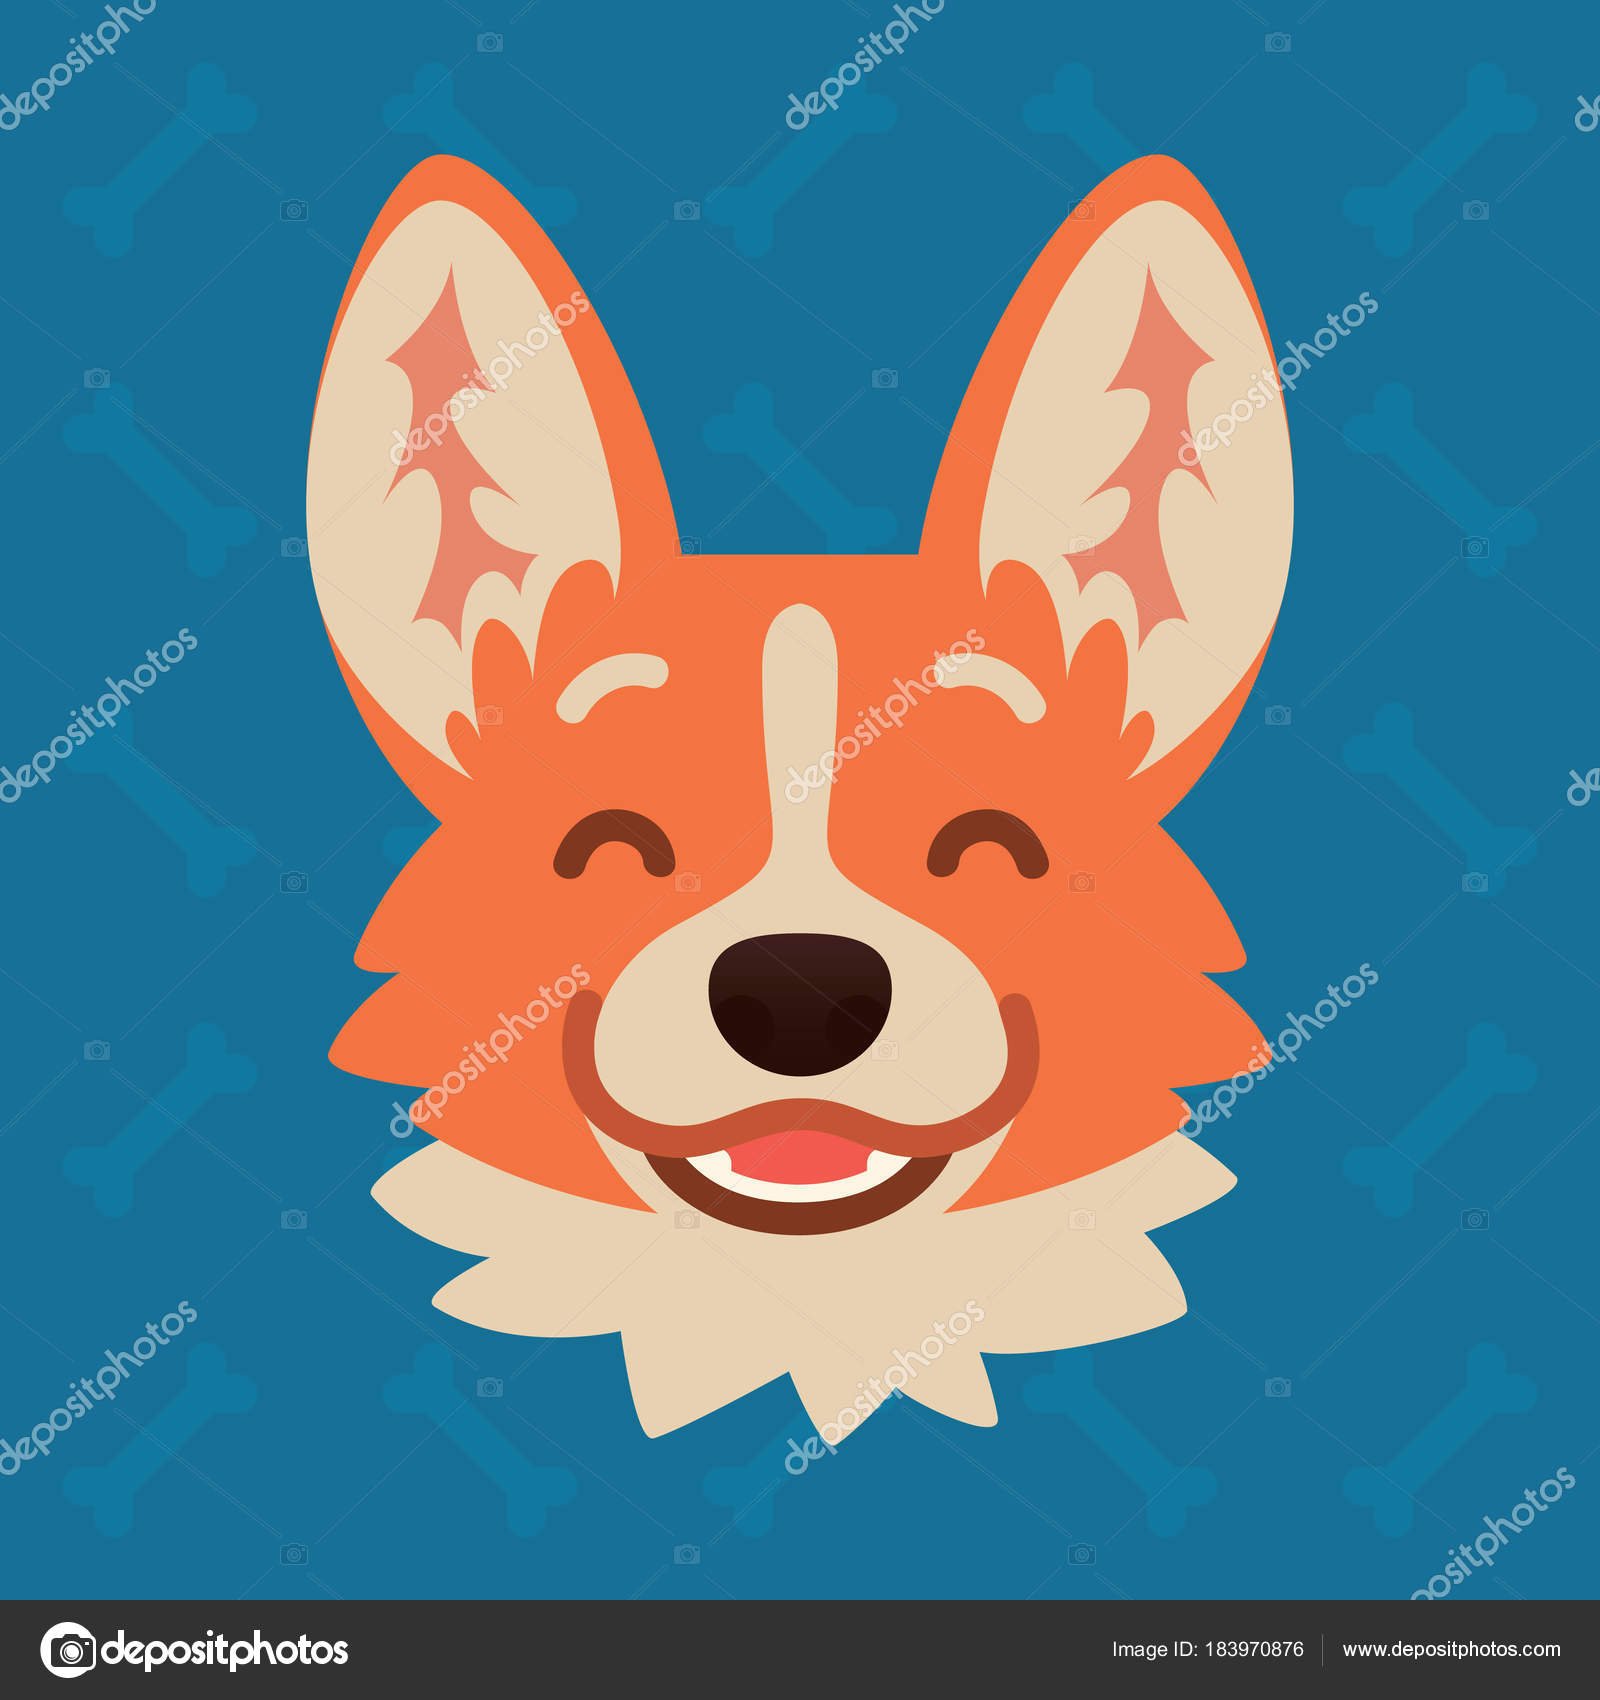 7eaca70c7 Vector illustration of cute dog in flat style shows happy emotion. Laugh  emoji.